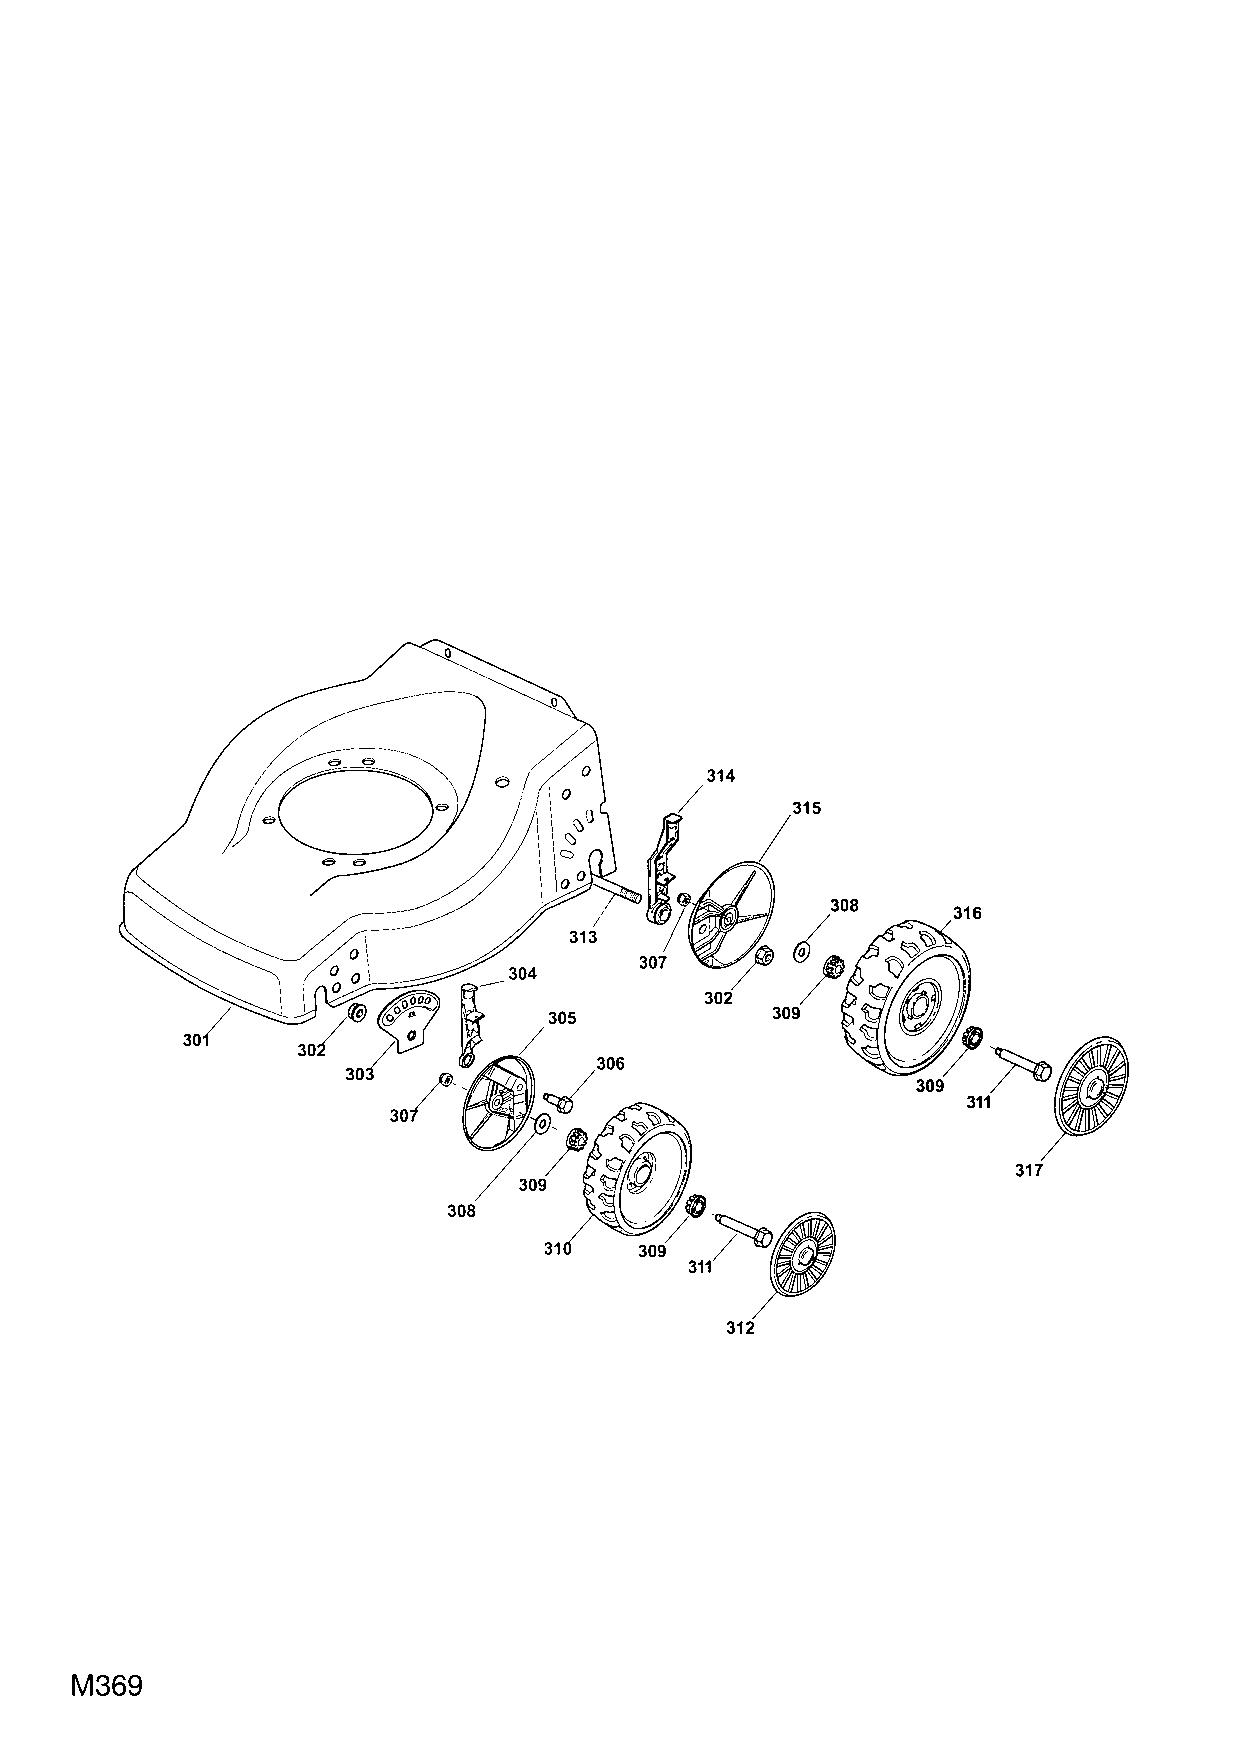 qualcast classic 35s parts diagram leaf anatomy mountfield pro 50 mac 2007 spare diagrams spares and